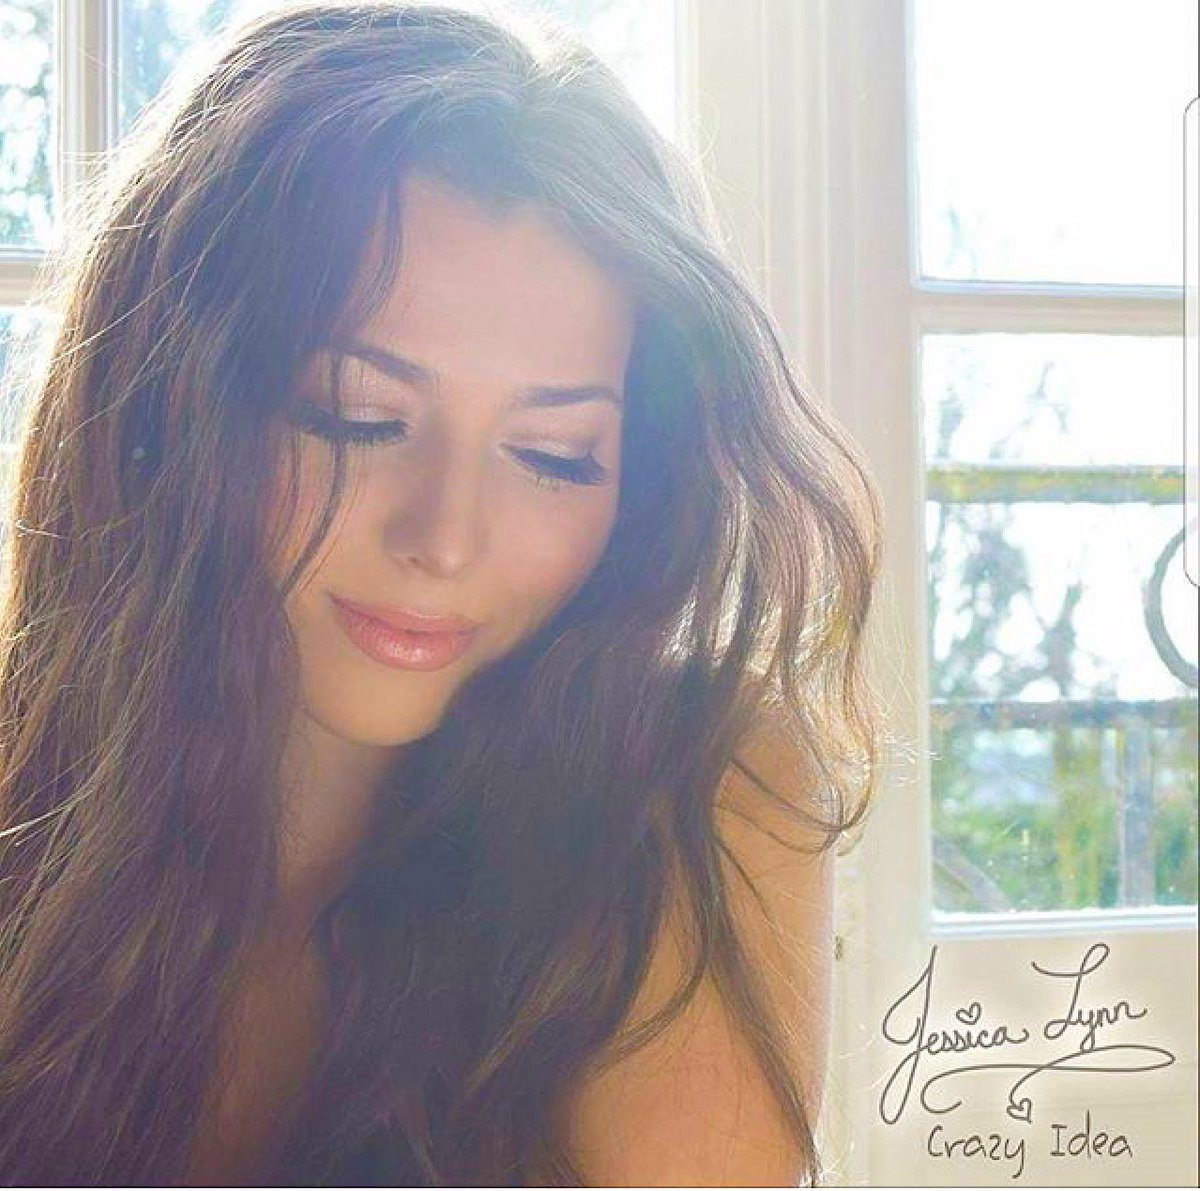 "#NewMusicFriday SEE @Jessica_Lynn_ in her fun new video featuring her new song ""Crazy Idea""   https:// youtu.be/1lgv5NnCXgk  &nbsp;   #NewCountryMusic <br>http://pic.twitter.com/vSEBHan5p3"